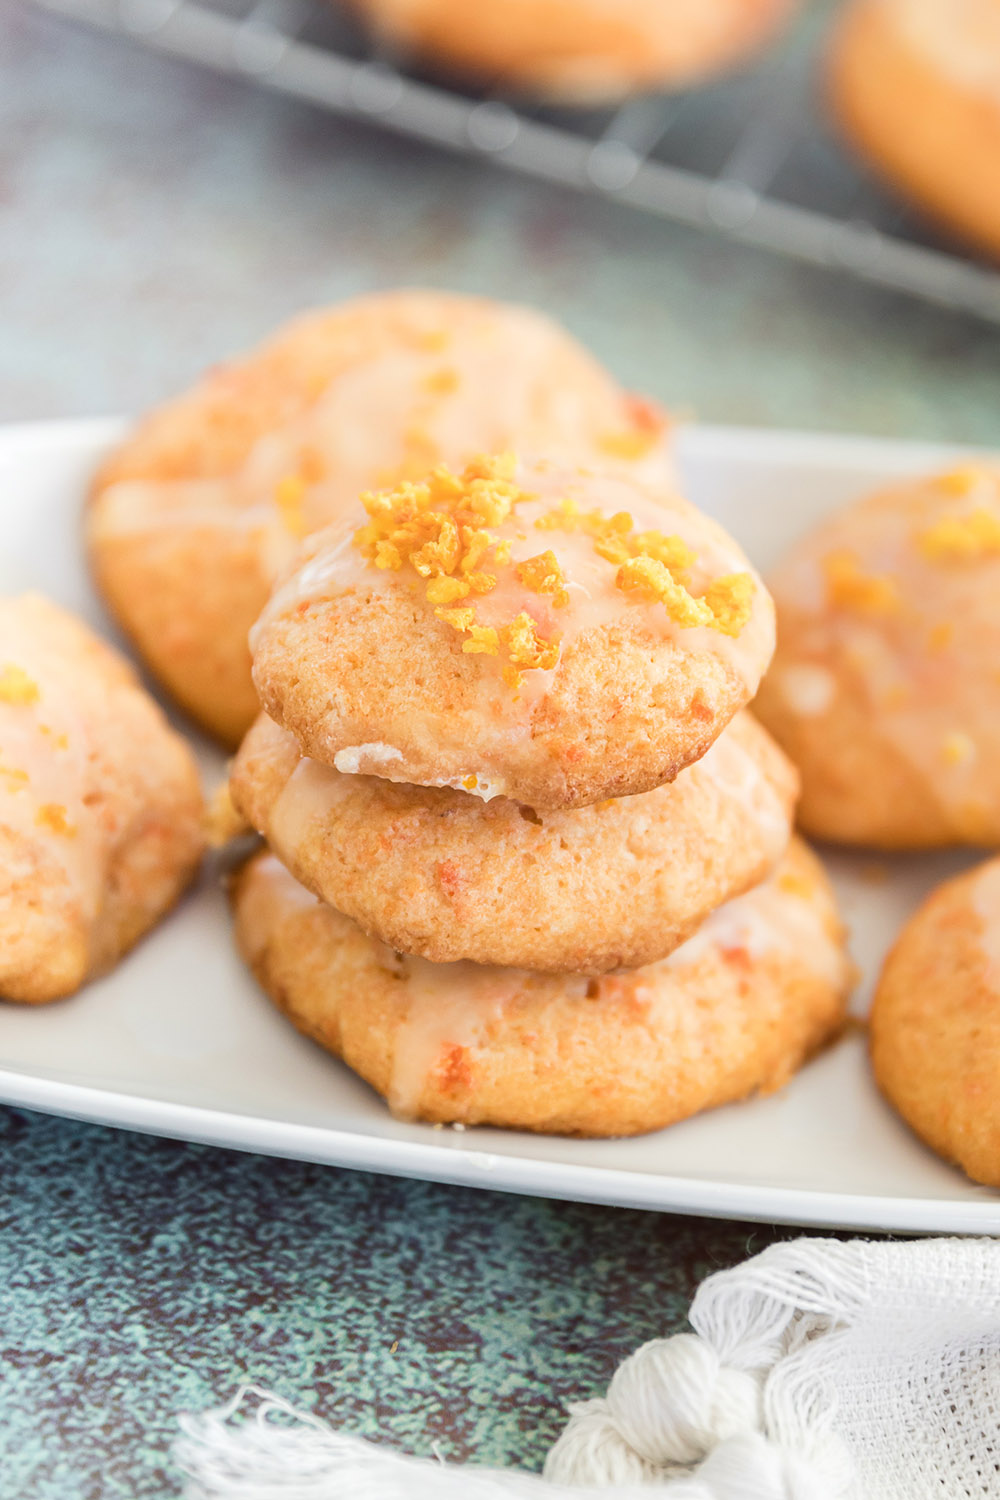 Stacked cookies on a tray. The cookies have a carrot glaze and are orange in color.